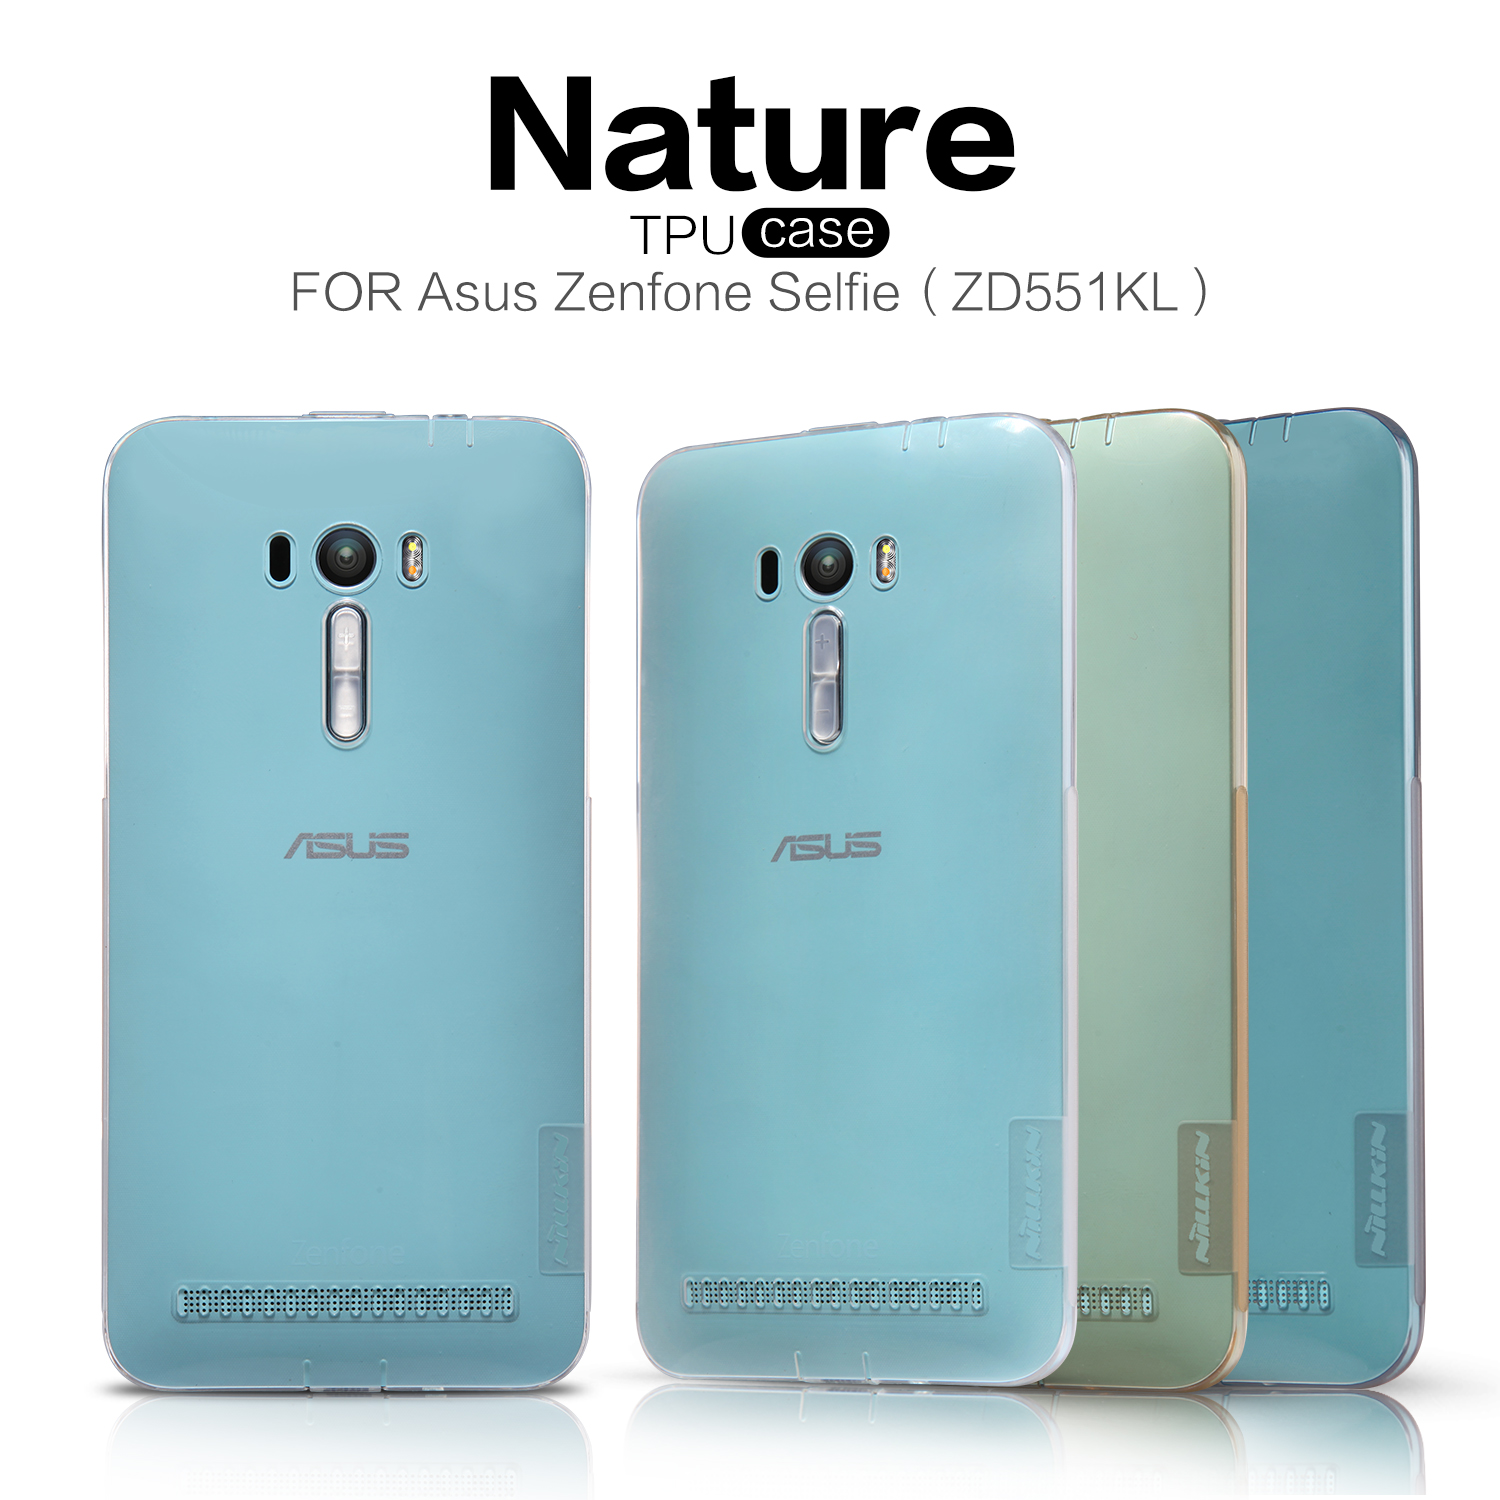 Nile gold asus zenfone selfie ZD551KL phone shell protective shell mobile phone shell transparent protective cover